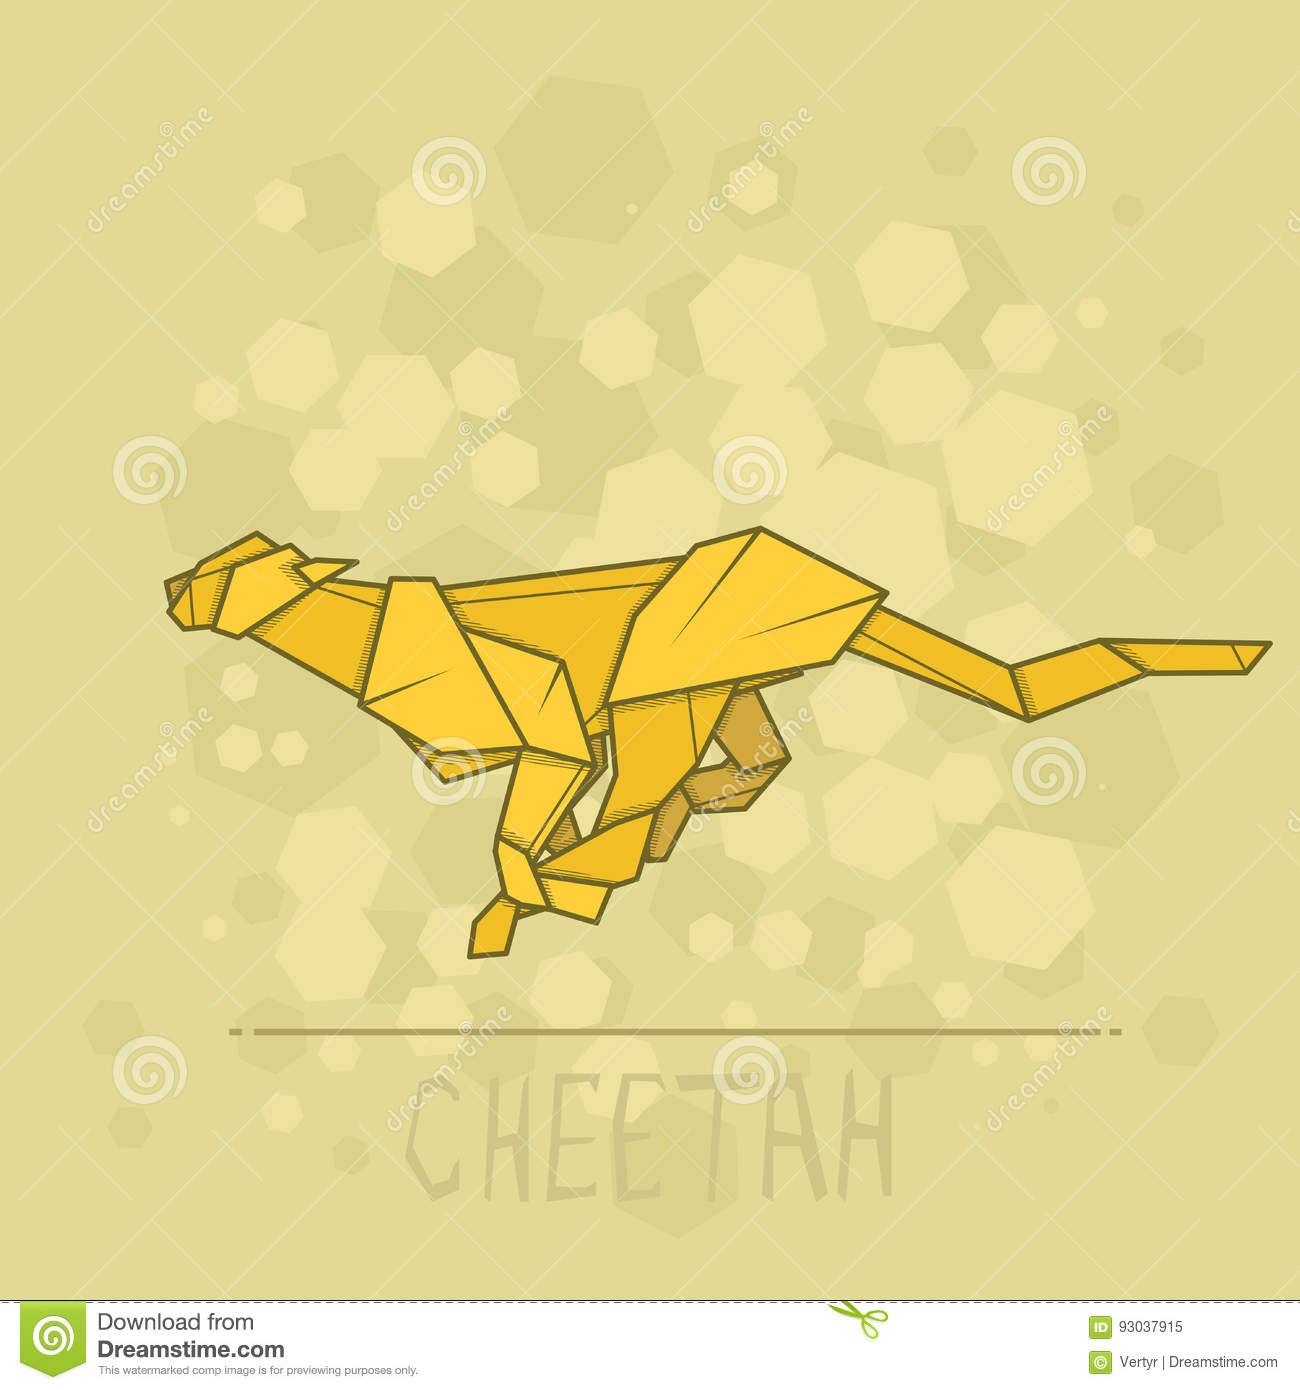 Download Vector Illustration Paper Origami Of Cheetah Stock